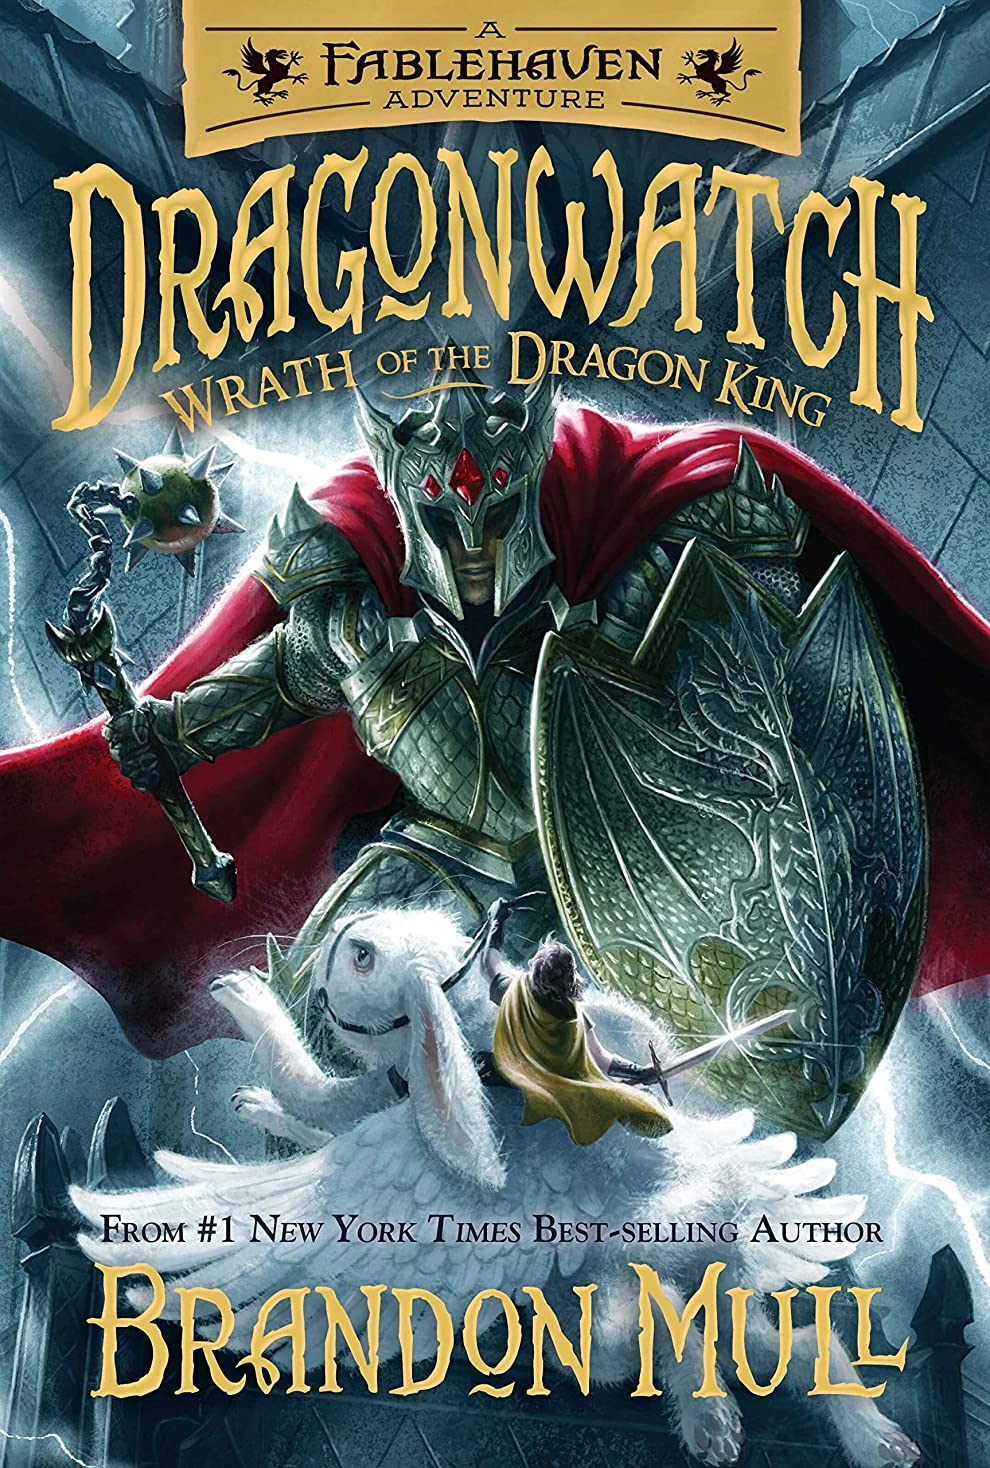 前売接地生きるDragonwatch, Book 2: Wrath of the Dragon King (English Edition)